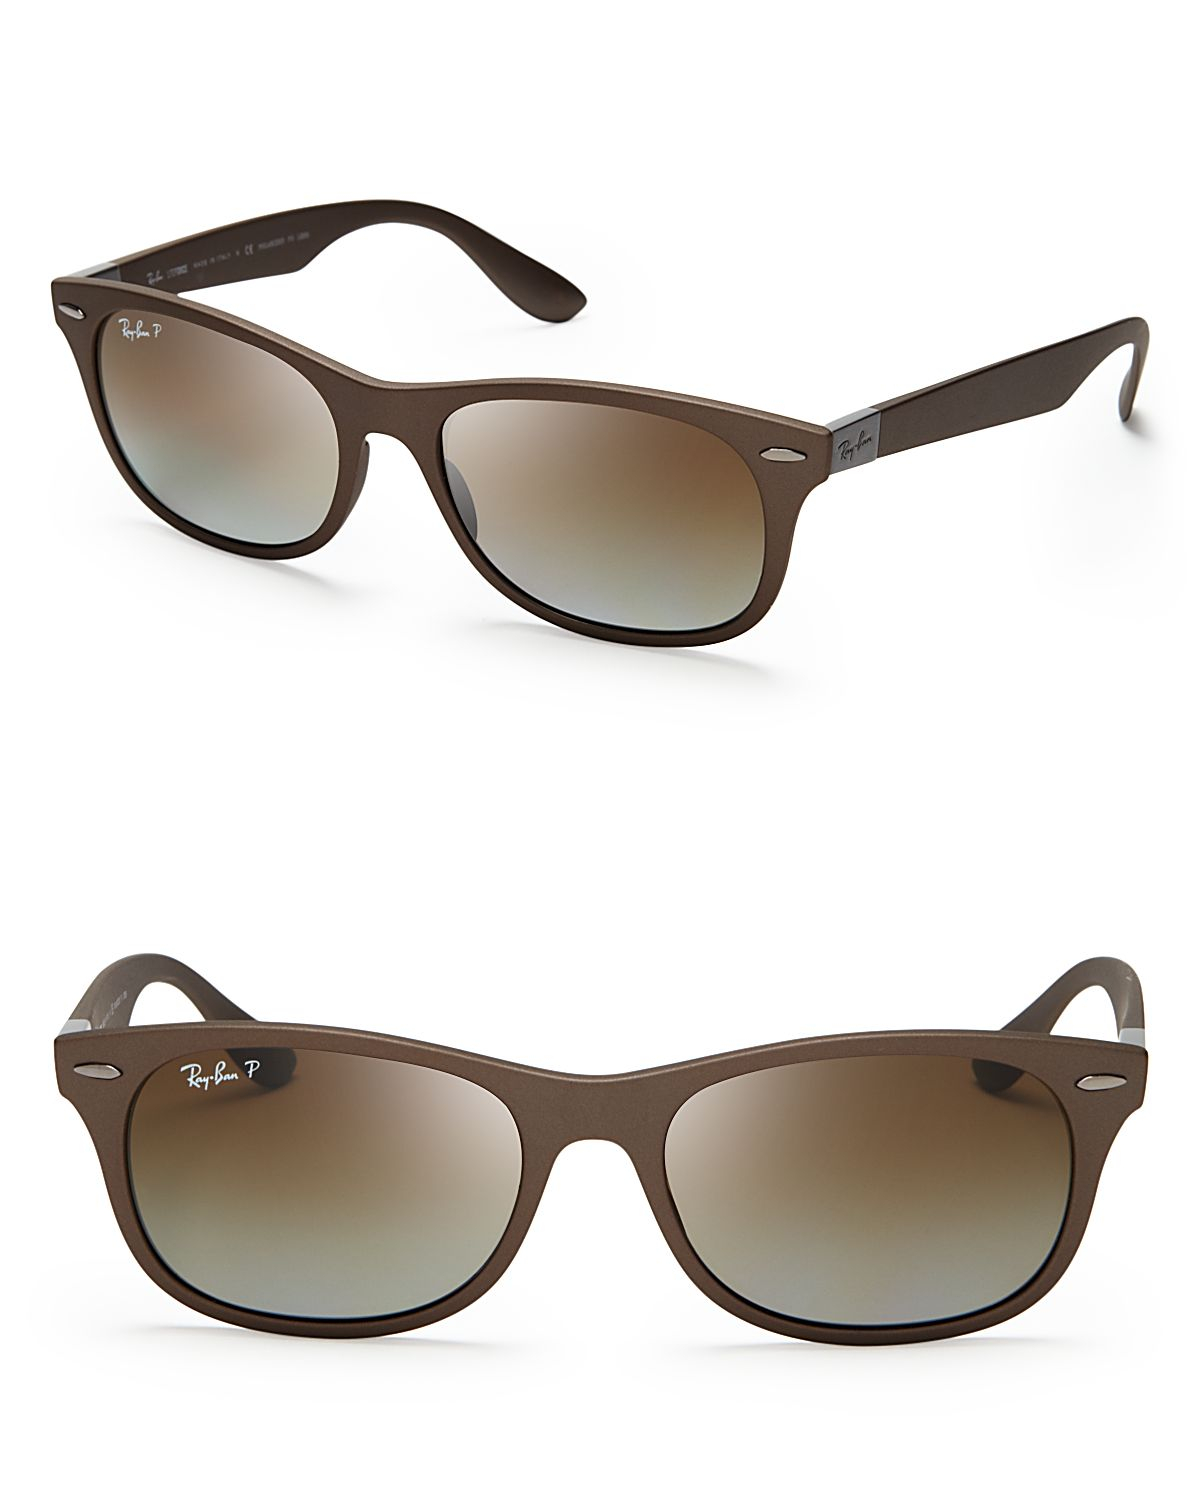 d2d57d32d2 Lyst - Ray-Ban Polarized New Wayfarer Lite Force Sunglasses in Brown